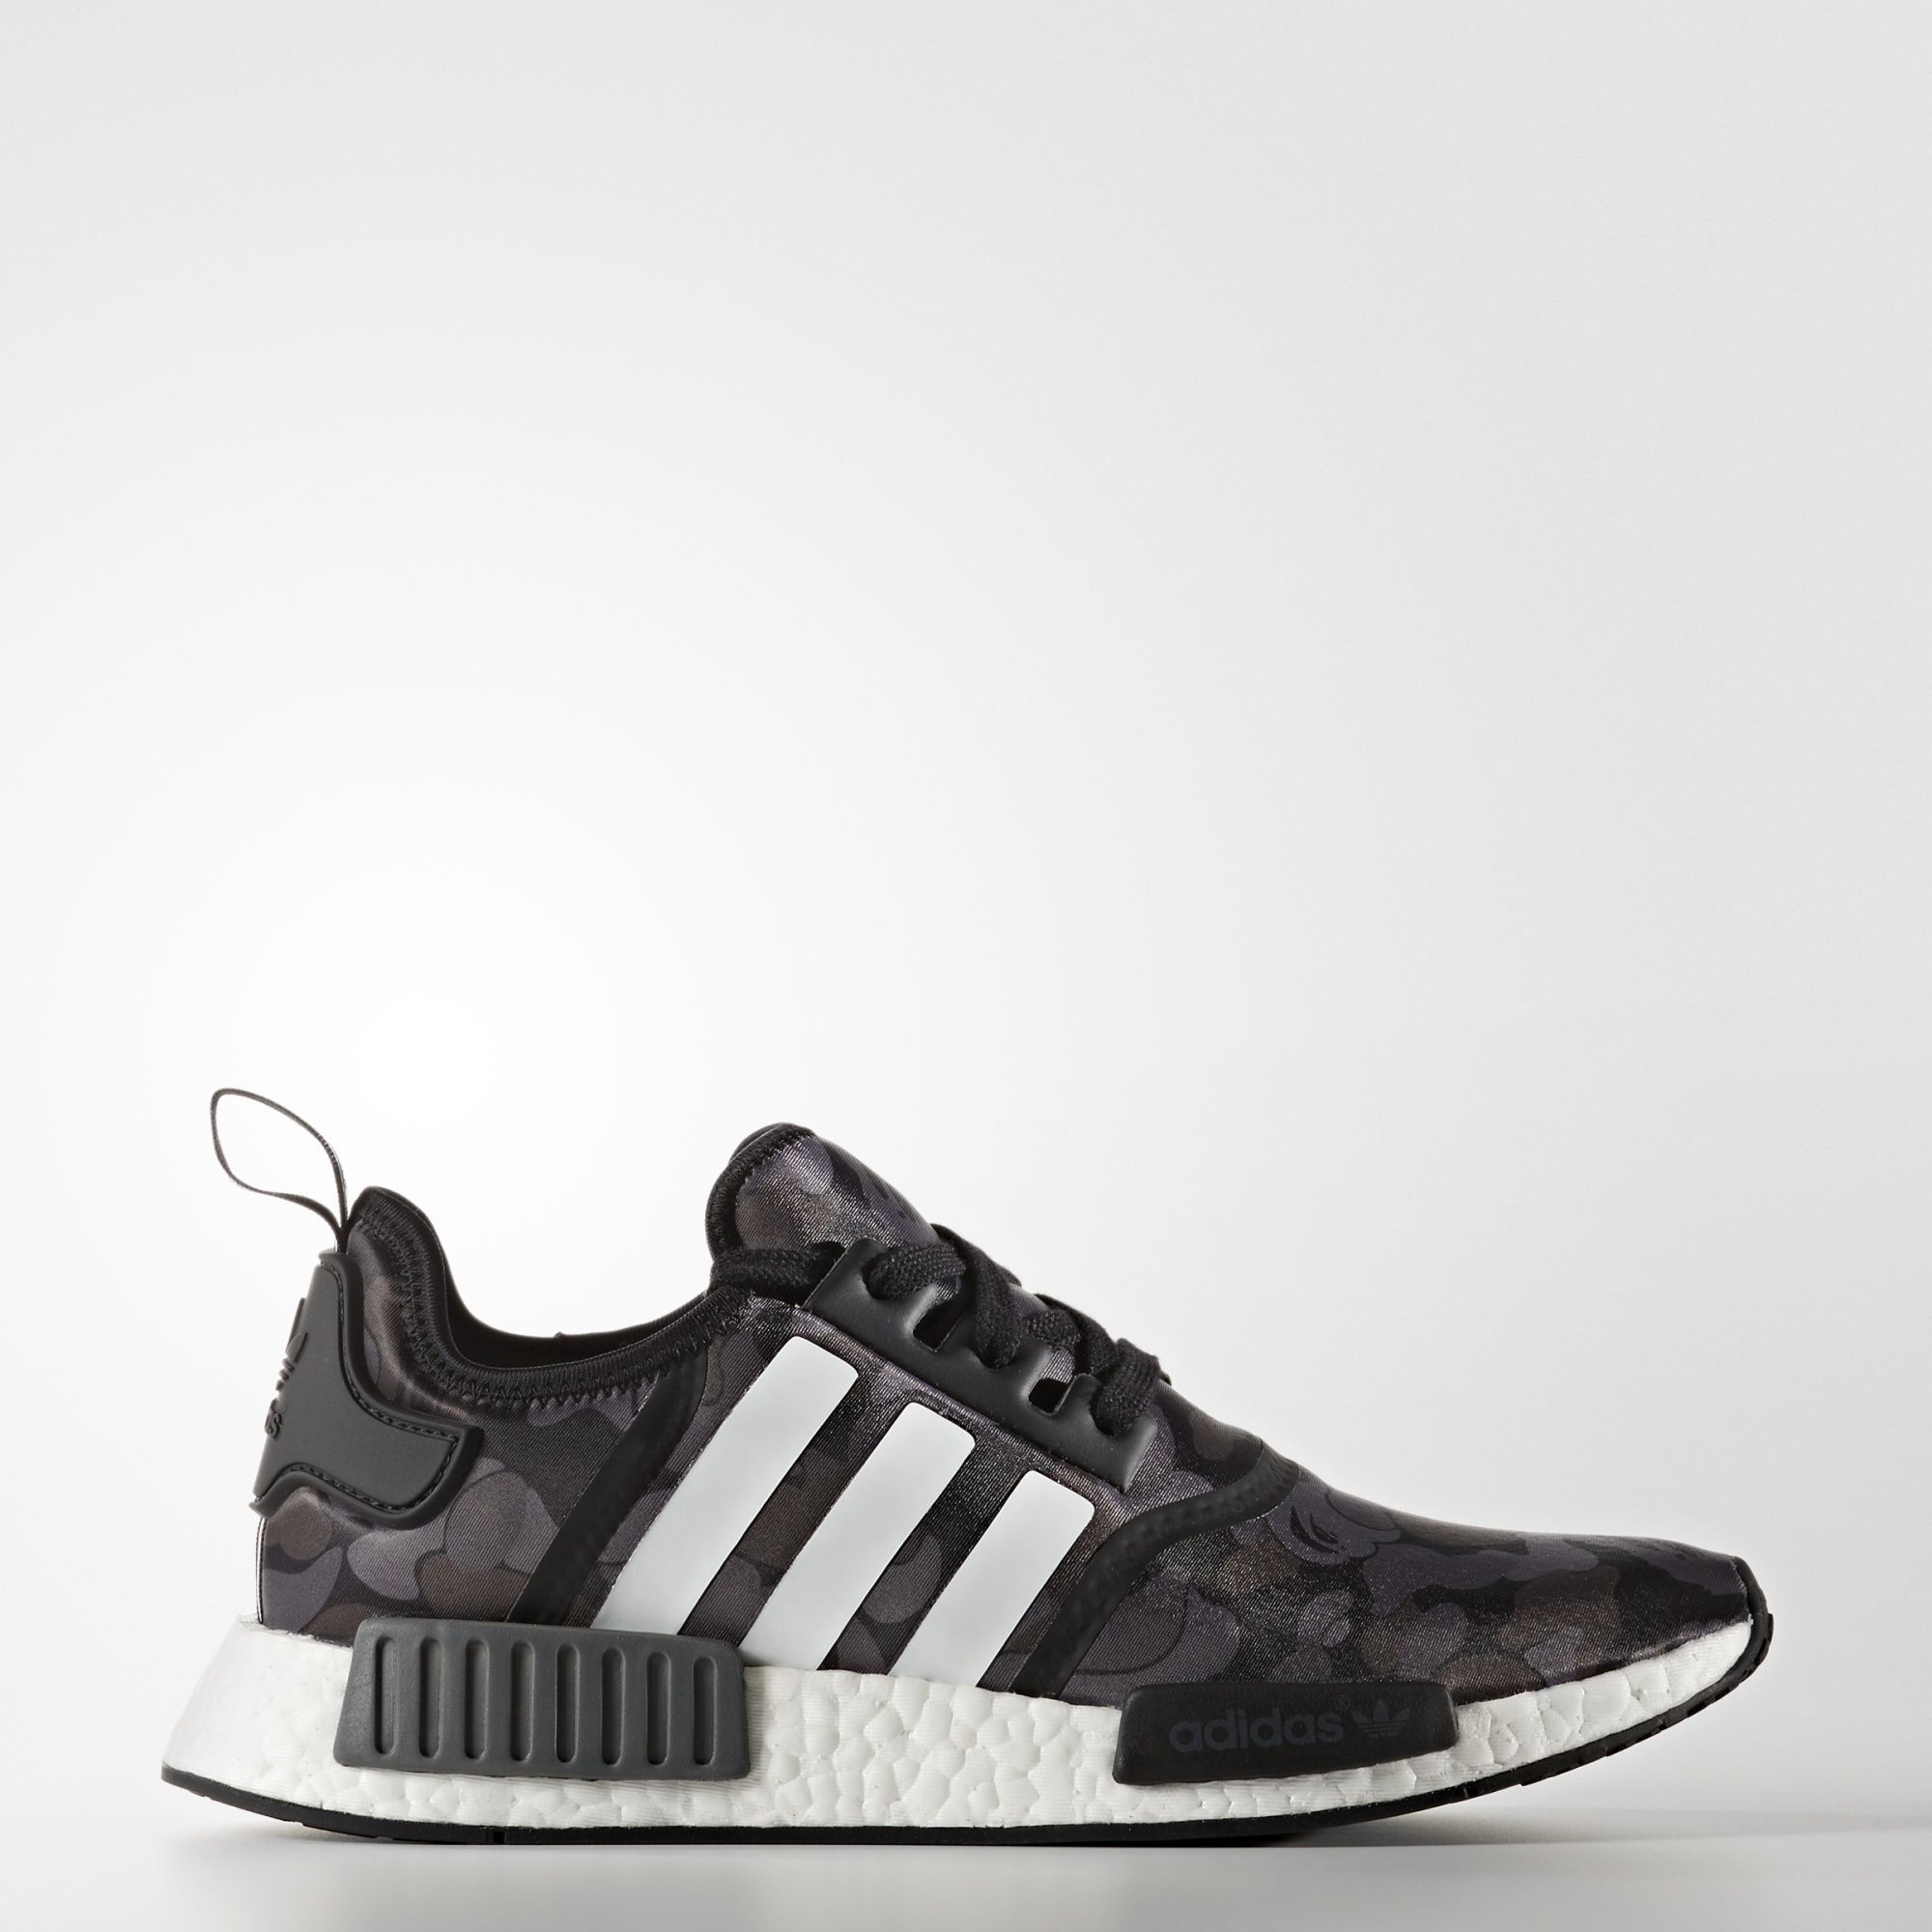 online retailer 1d9b0 26b84 Tênis Nmd R1 Bape | ;Style is a way to say who you are ...